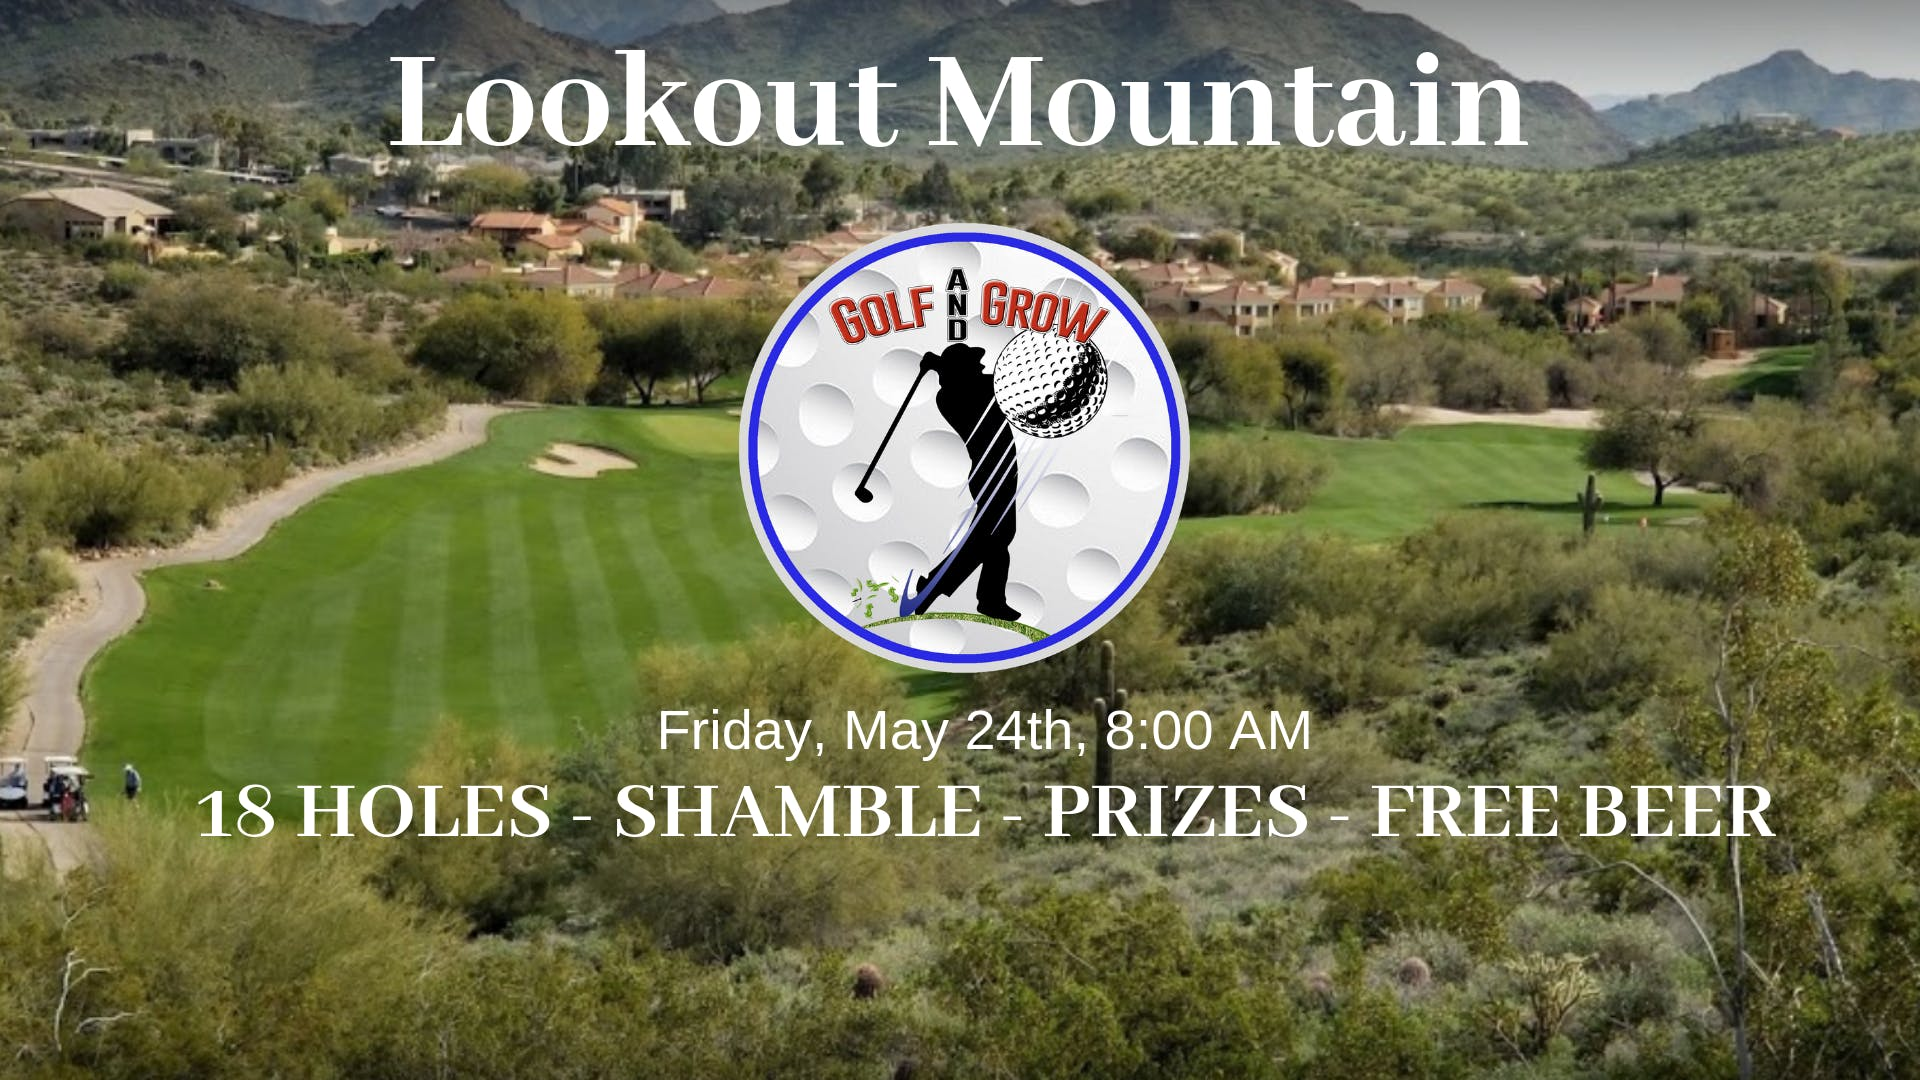 18 Hole Golf Tournament at Lookout Mountain ⛳